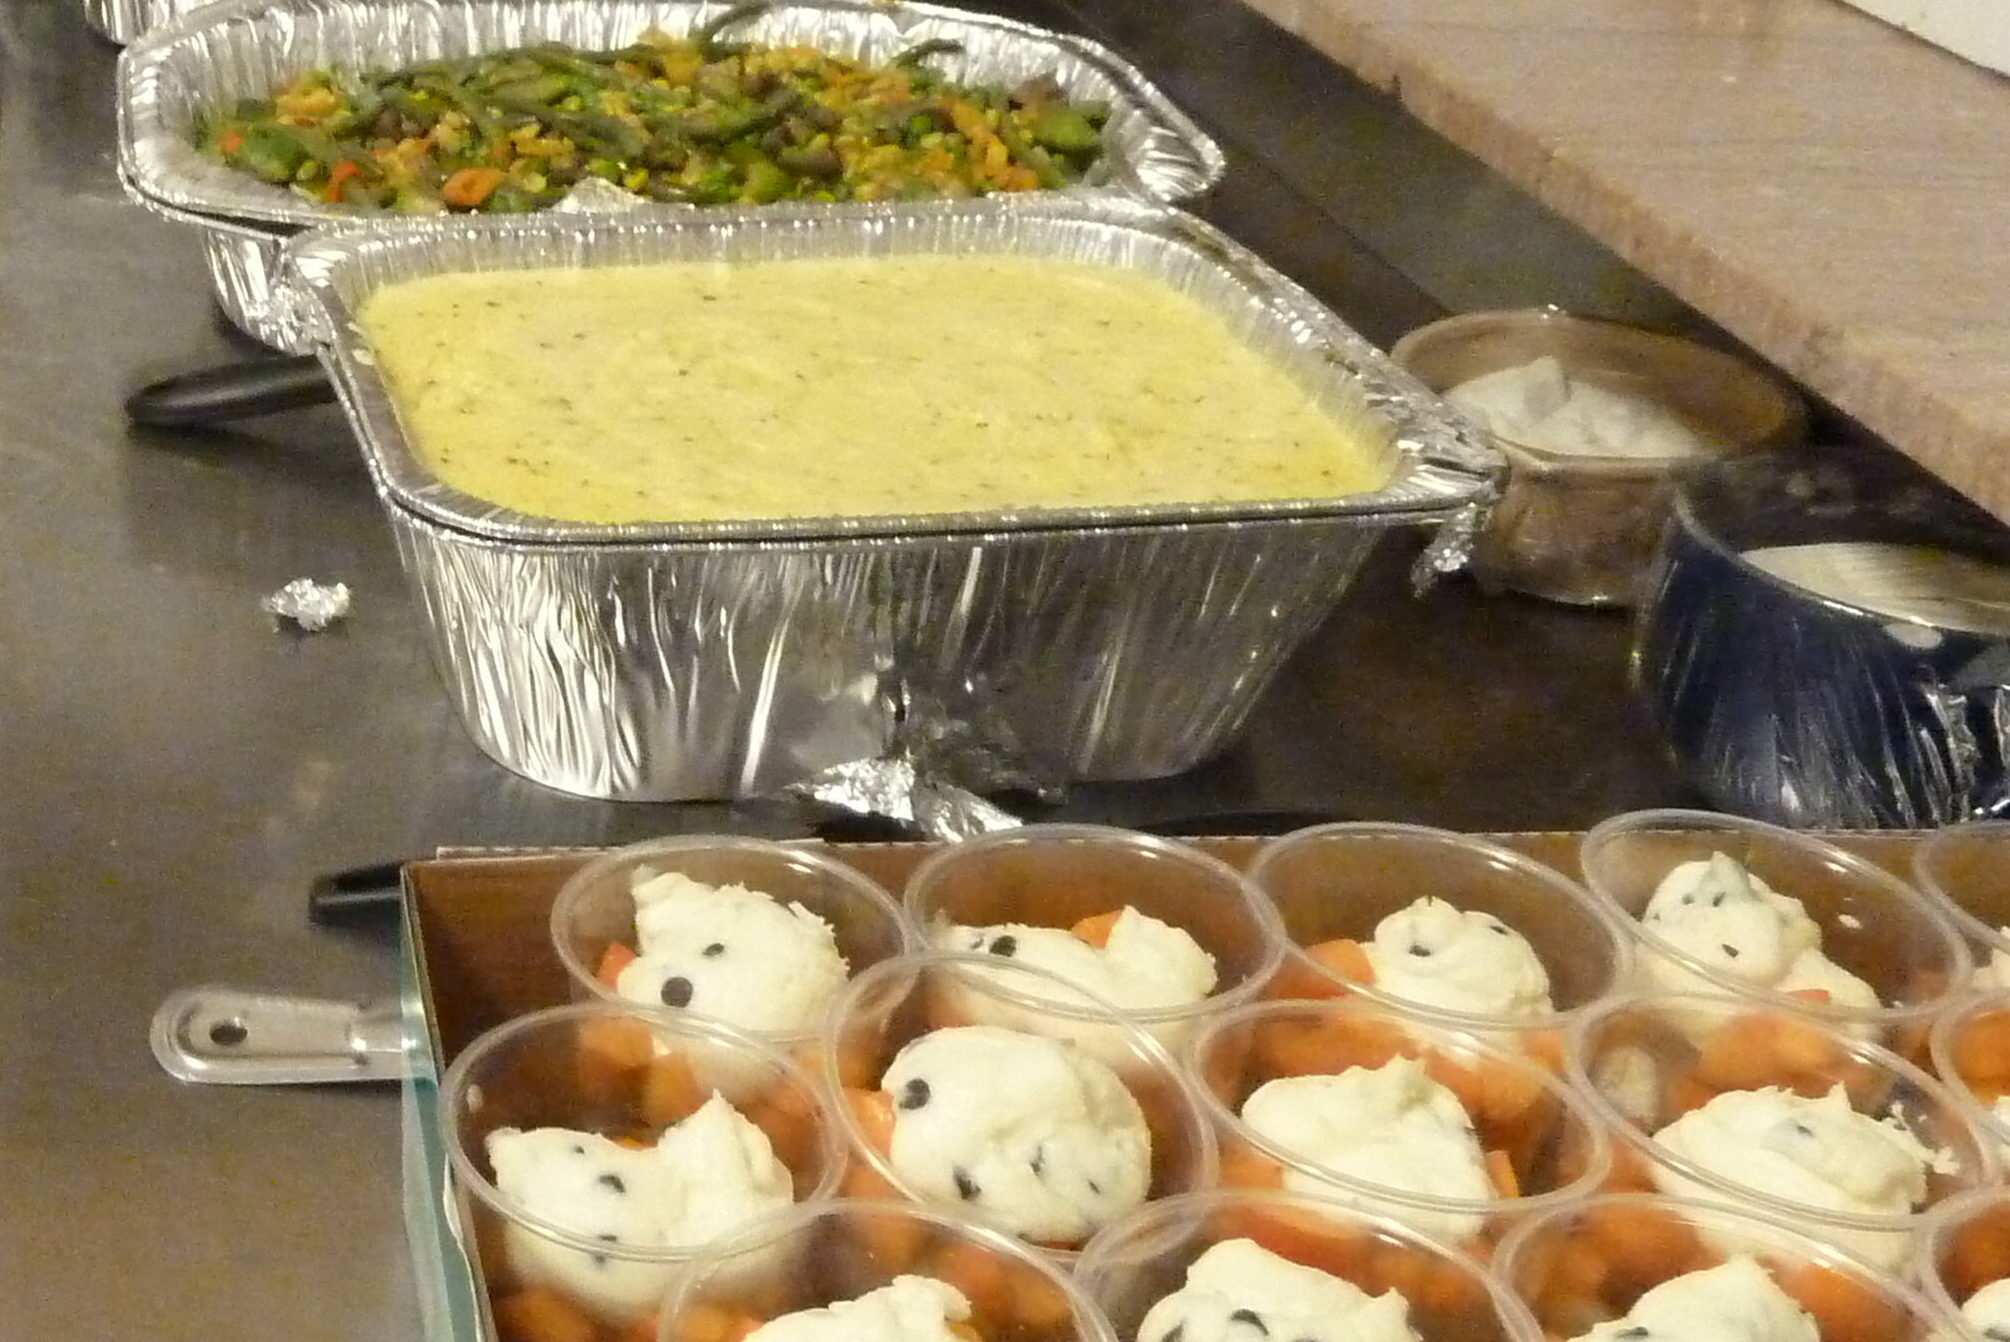 Volunteer Cooks Serve Dinner and Community Care